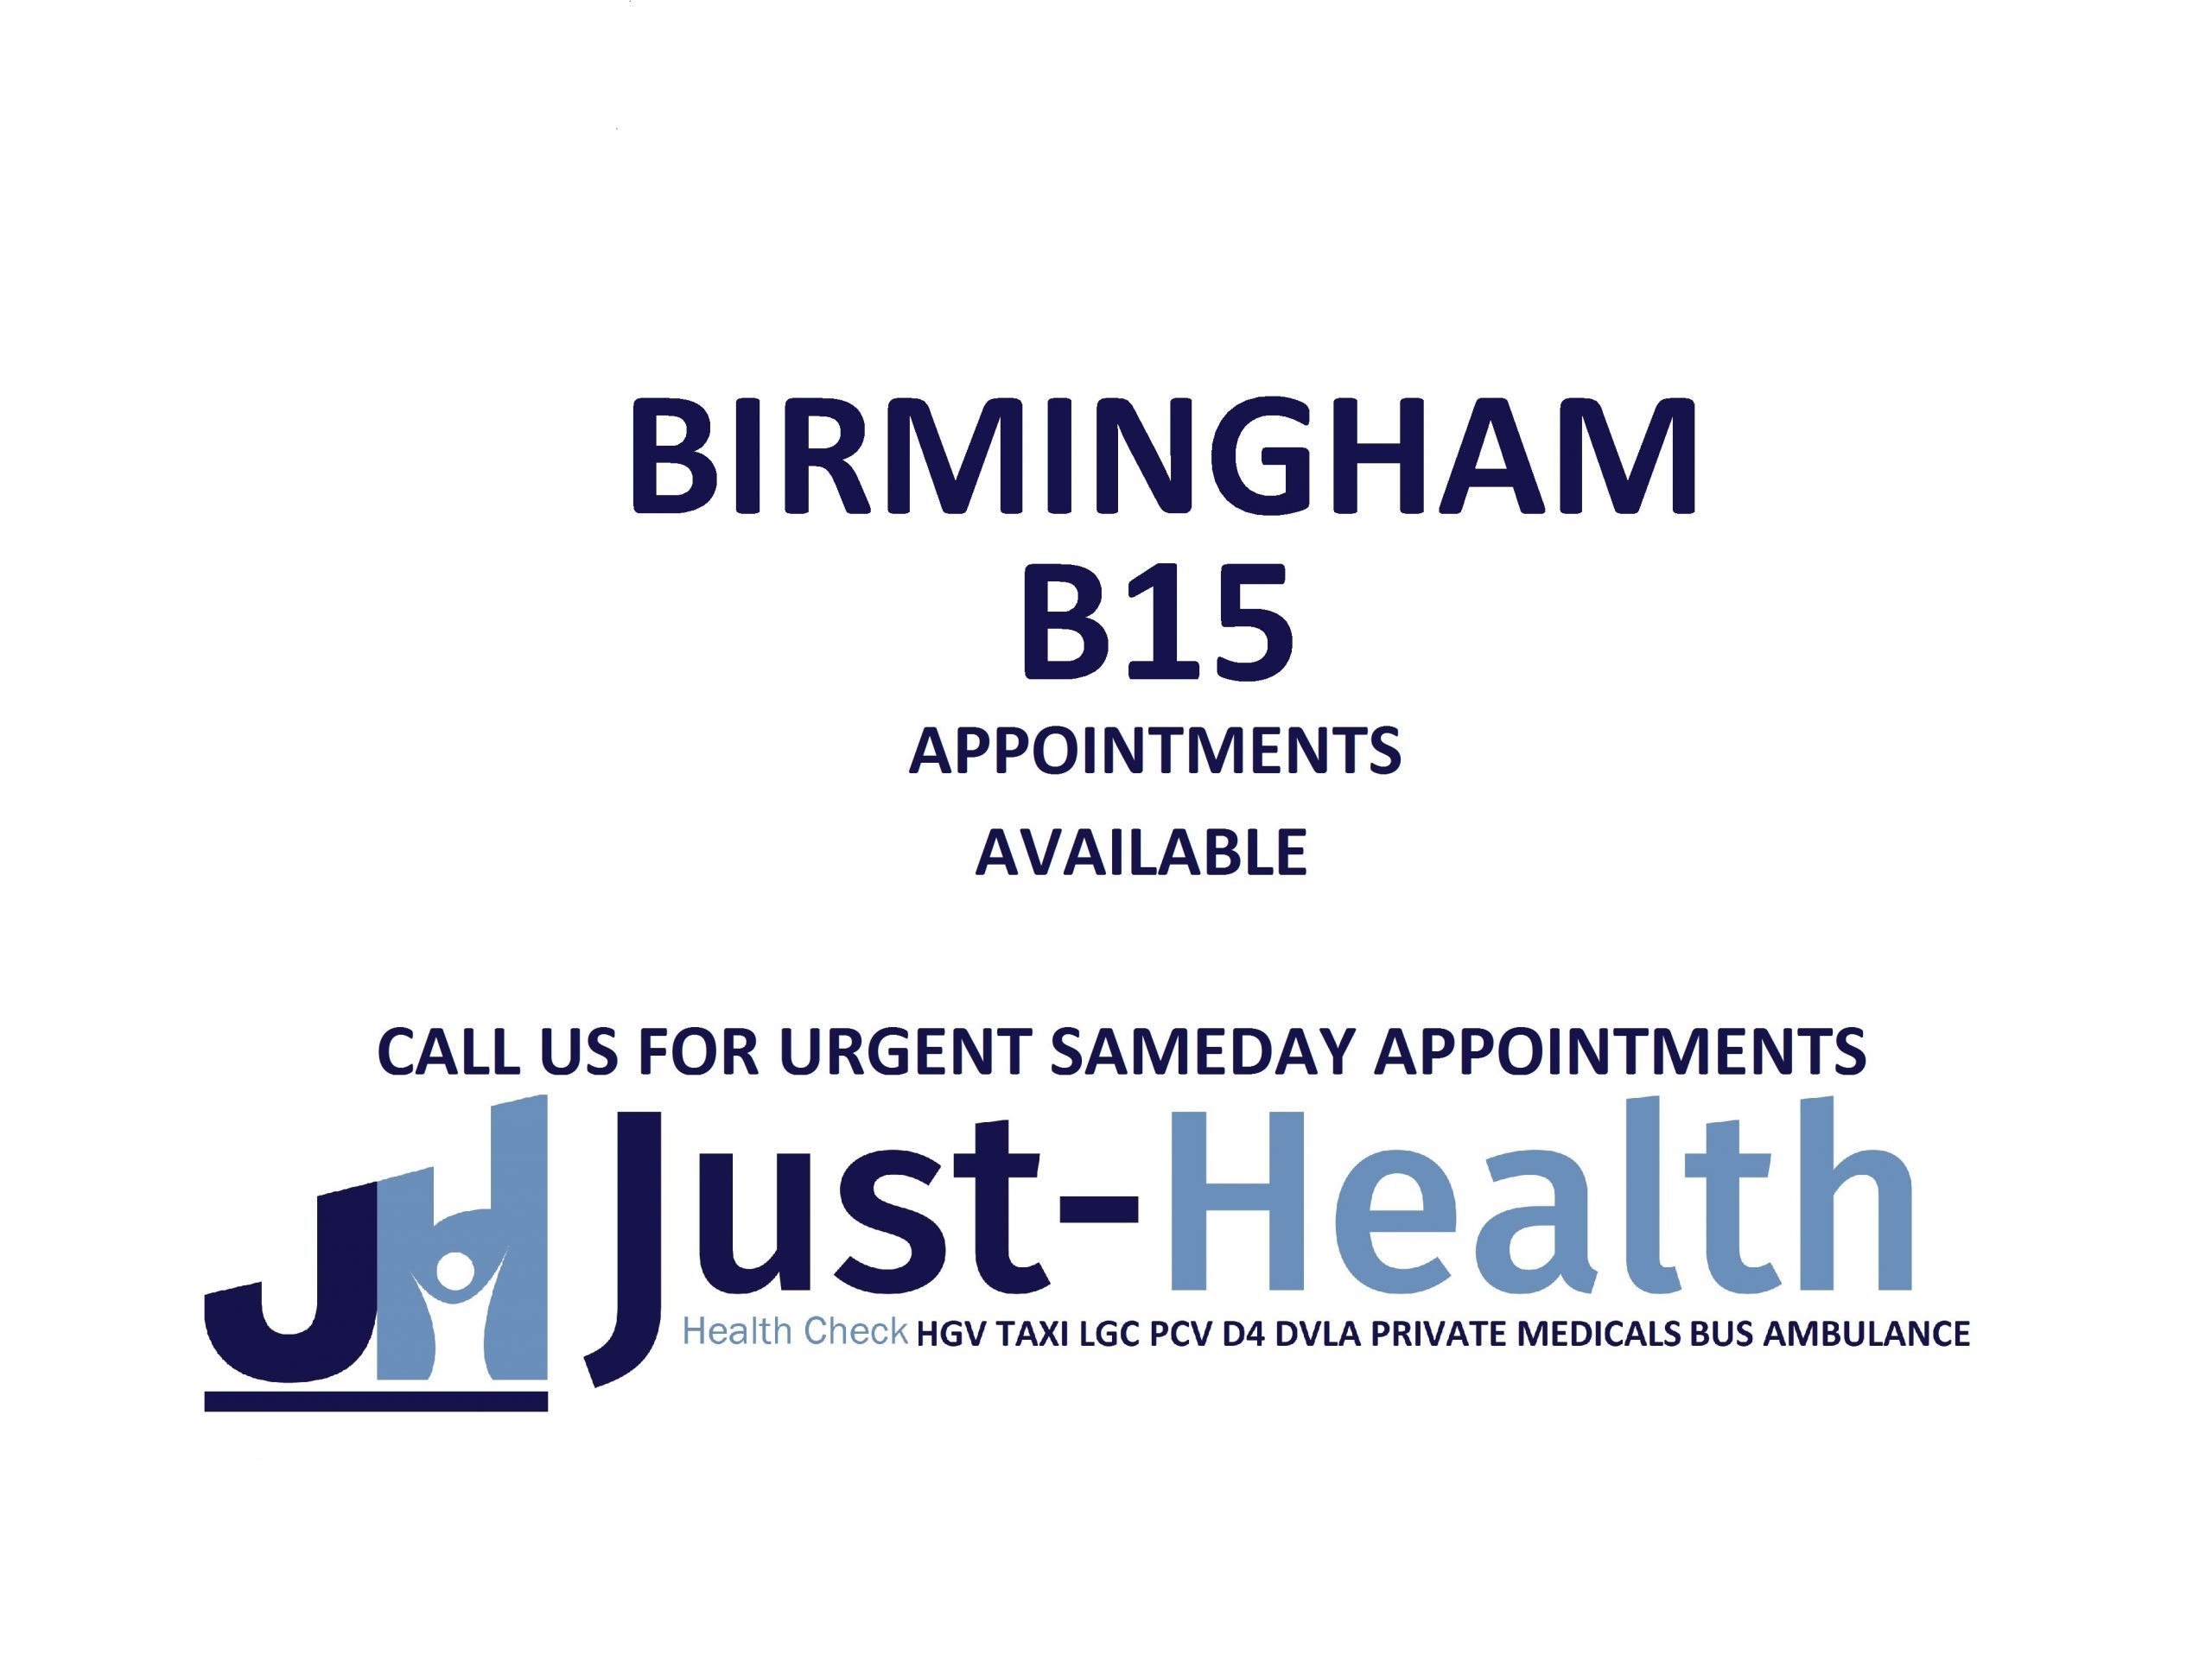 d4 PSV LGV Taxi Pcv HGV medical just health clinic birmingham